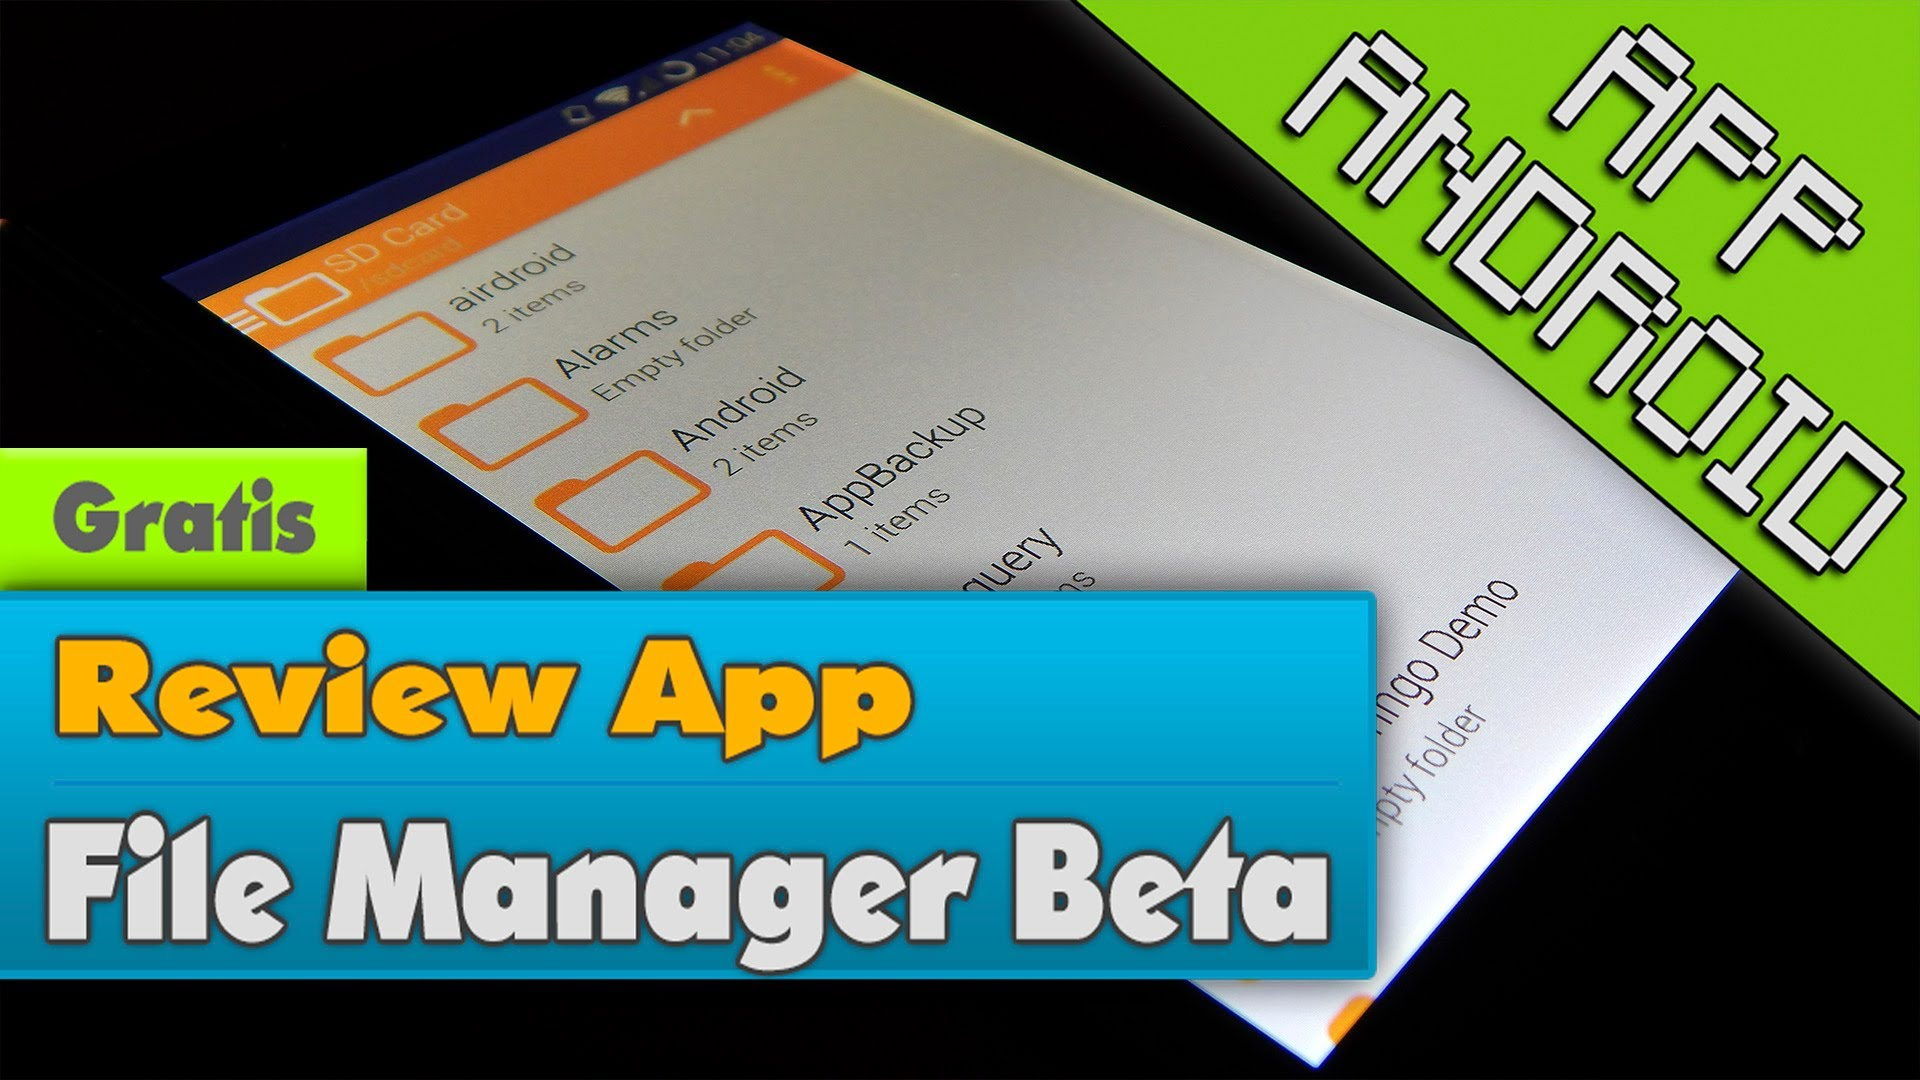 review app - file manager beta